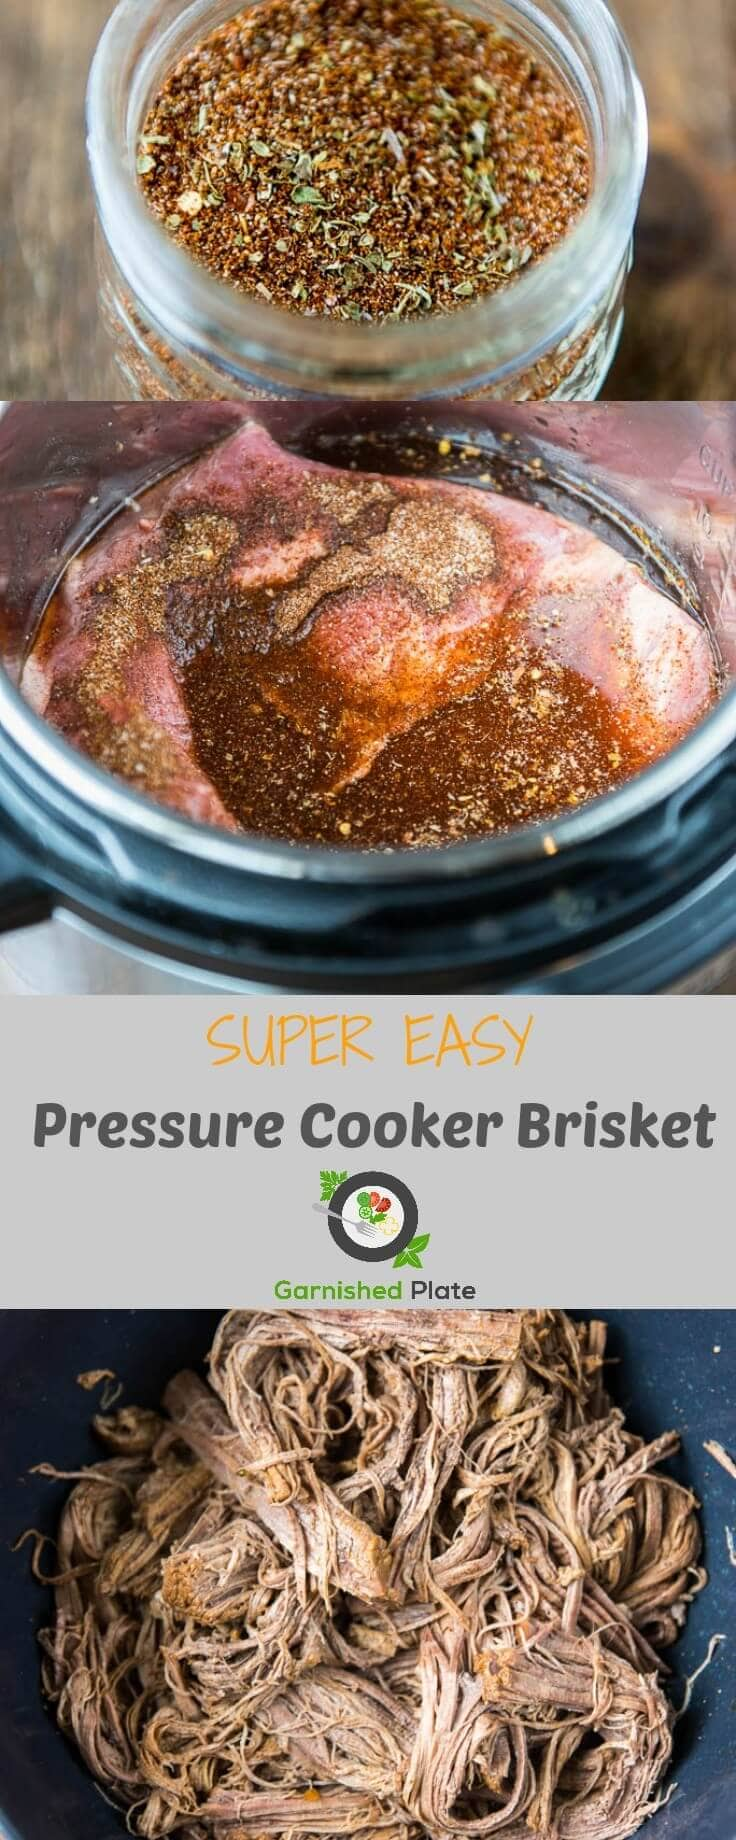 It's time to rethink the meaning of quick dinners! With this Pressure Cooker Brisket you can have amazing shredded beef perfect for sandwiches, tacos and more in just about an hour!